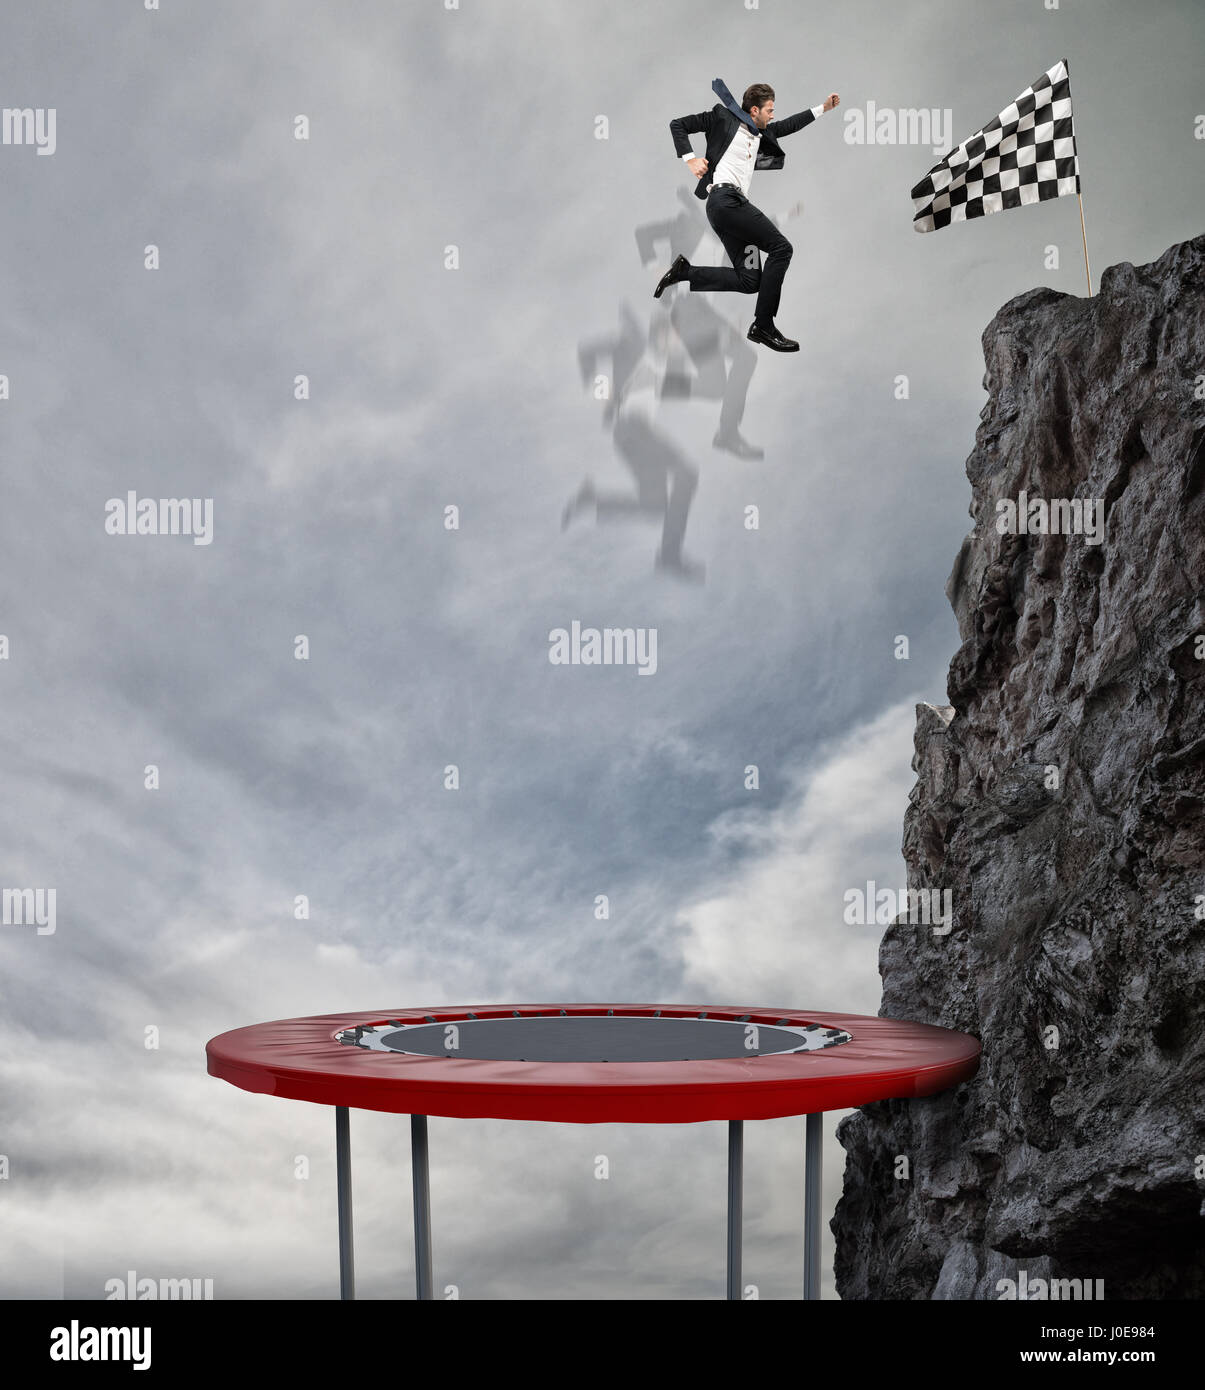 Businessman jumping on a trampoline to reach the flag. Achievement business goal and Difficult career concept - Stock Image